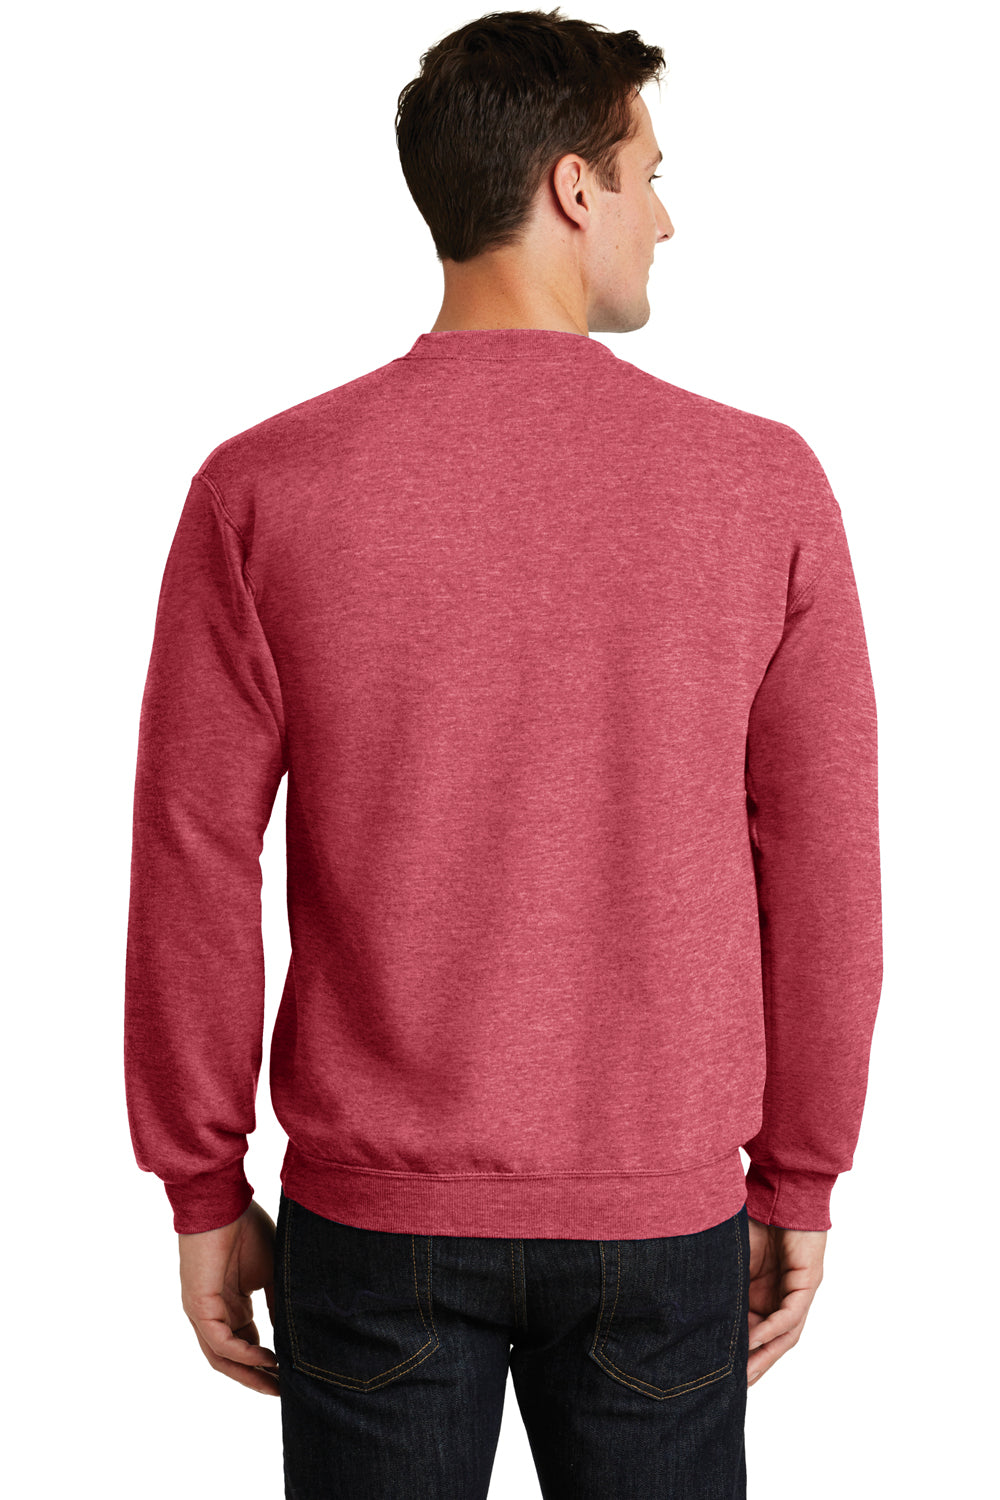 Port & Company PC78 Mens Core Fleece Crewneck Sweatshirt Heather Red Back